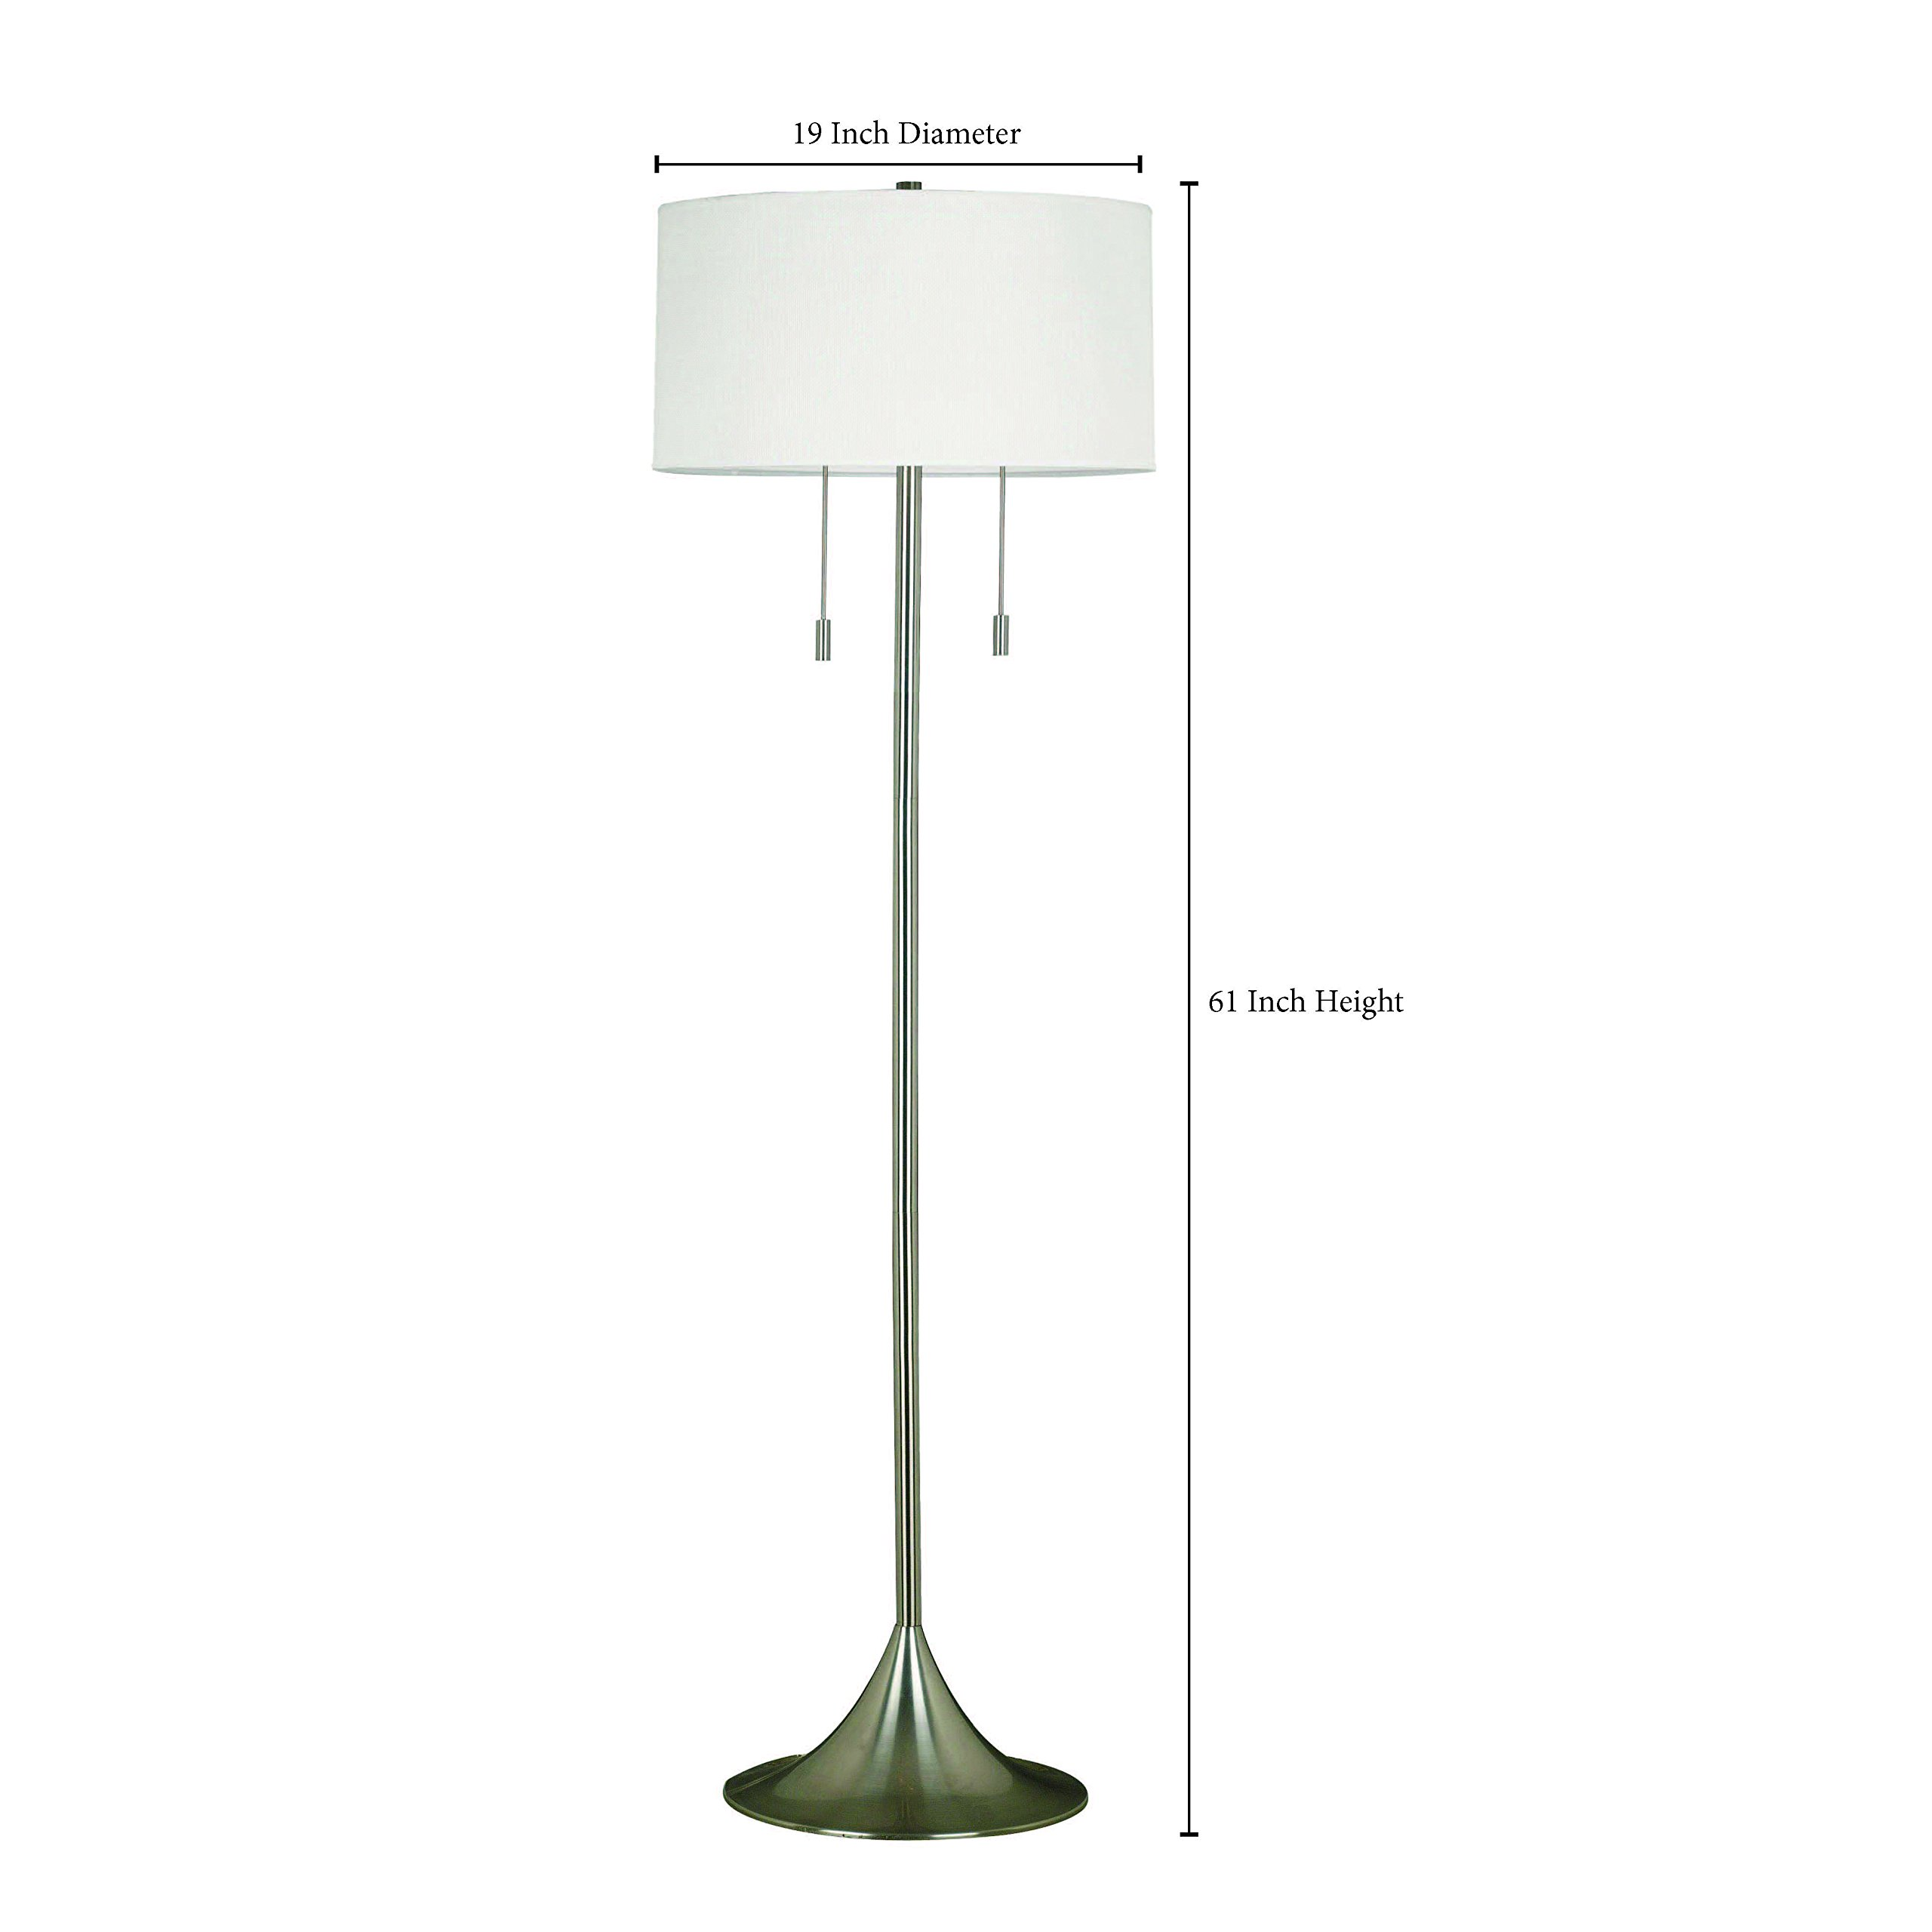 Kenroy Home 21405BS Stowe Floor Lamp In Brushed Steel Finish With A White Textured Drum Shade, 19'' x 19'' x 60''